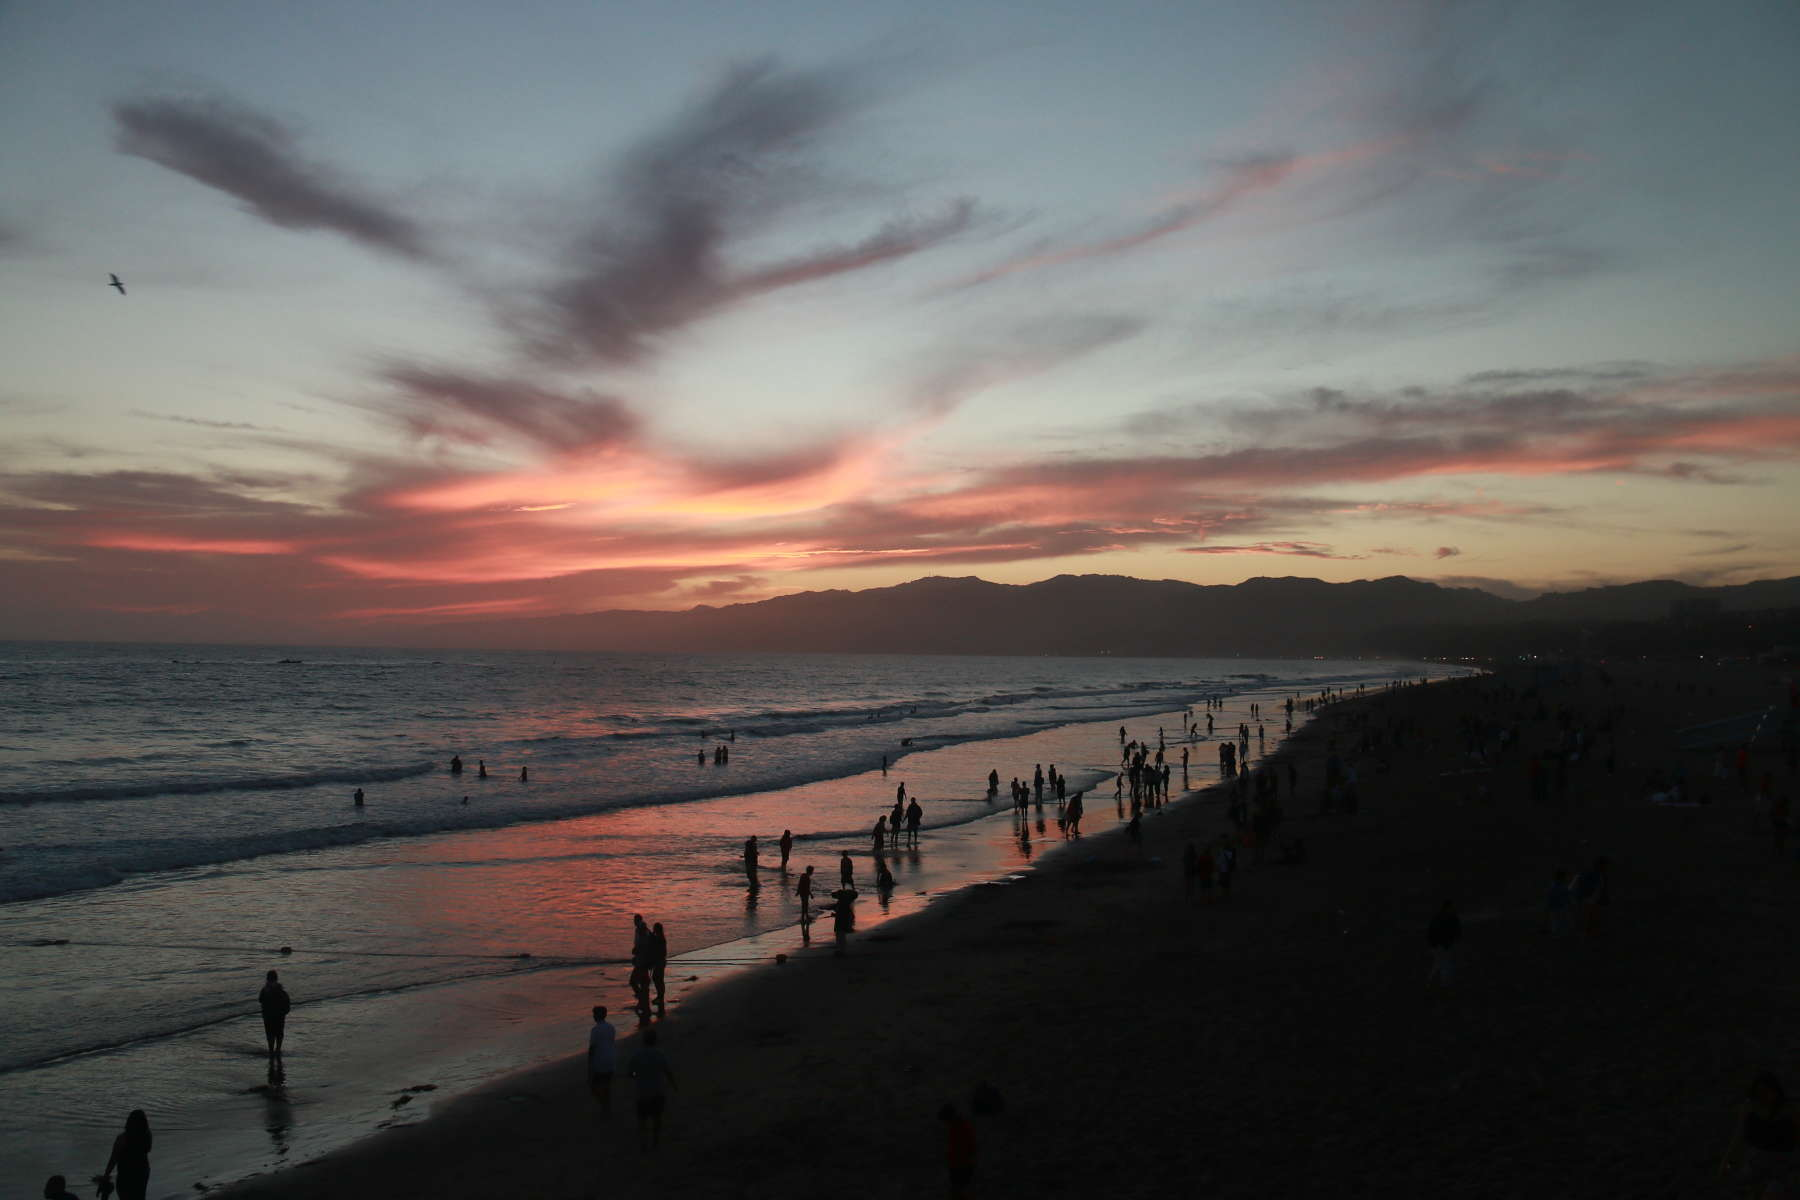 Canyon Campground, Leo Carrillo, CA: 12 Hipcamper Reviews And 17 Photos